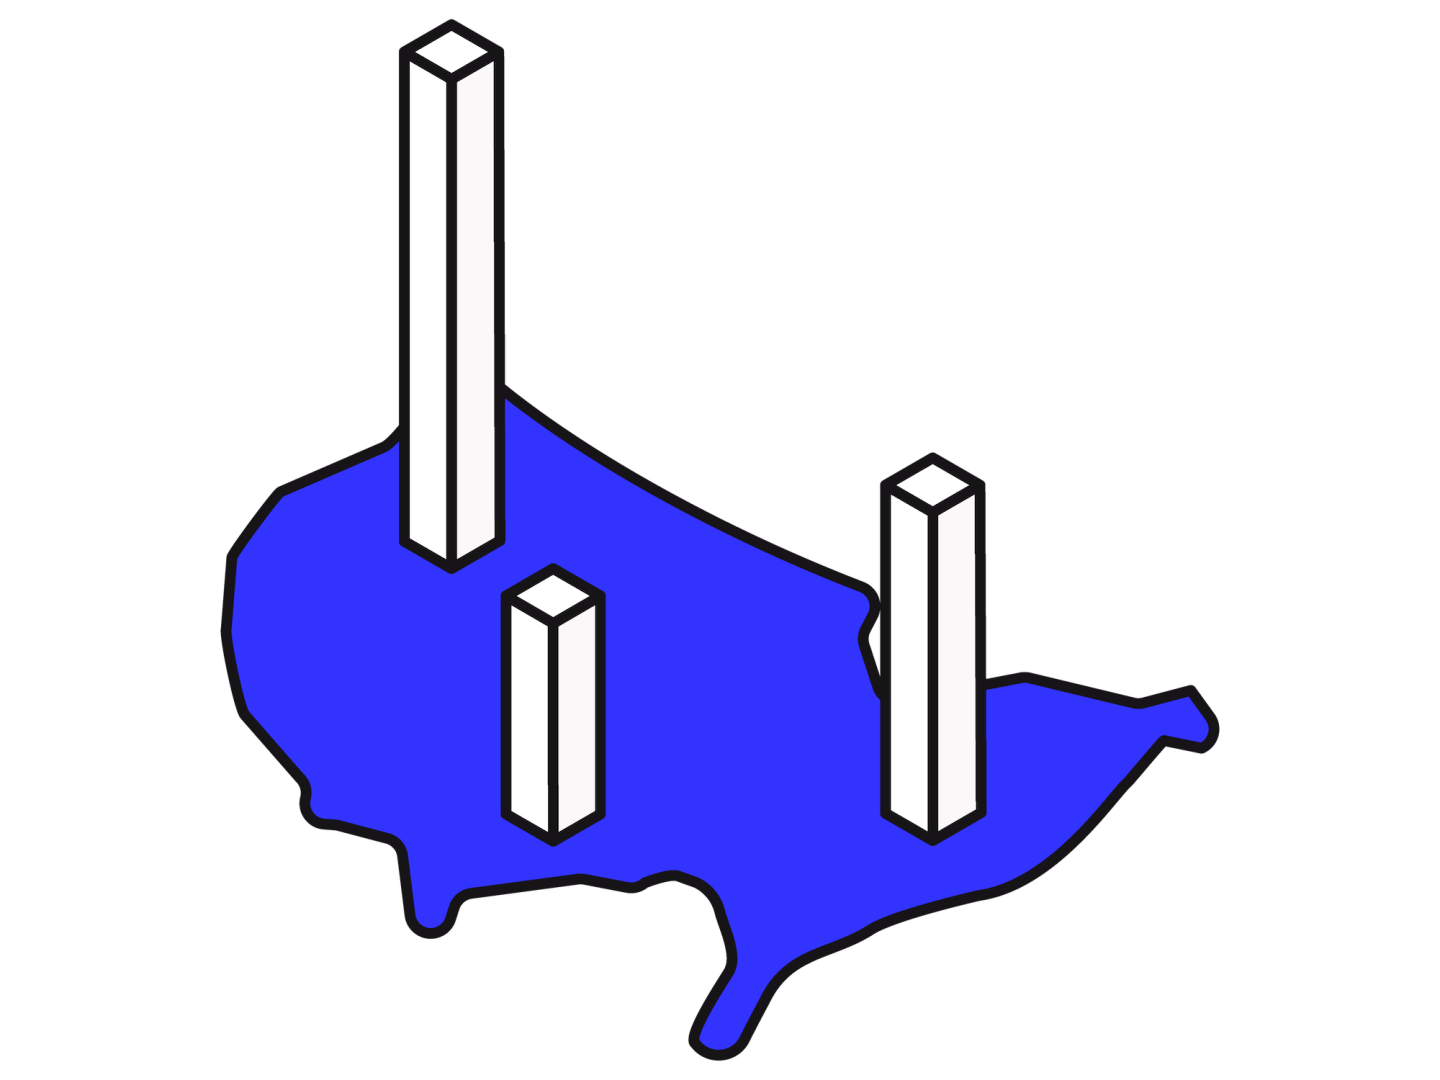 An isometric illustration of the USA map with 3 isometric vertical bars coming from it.